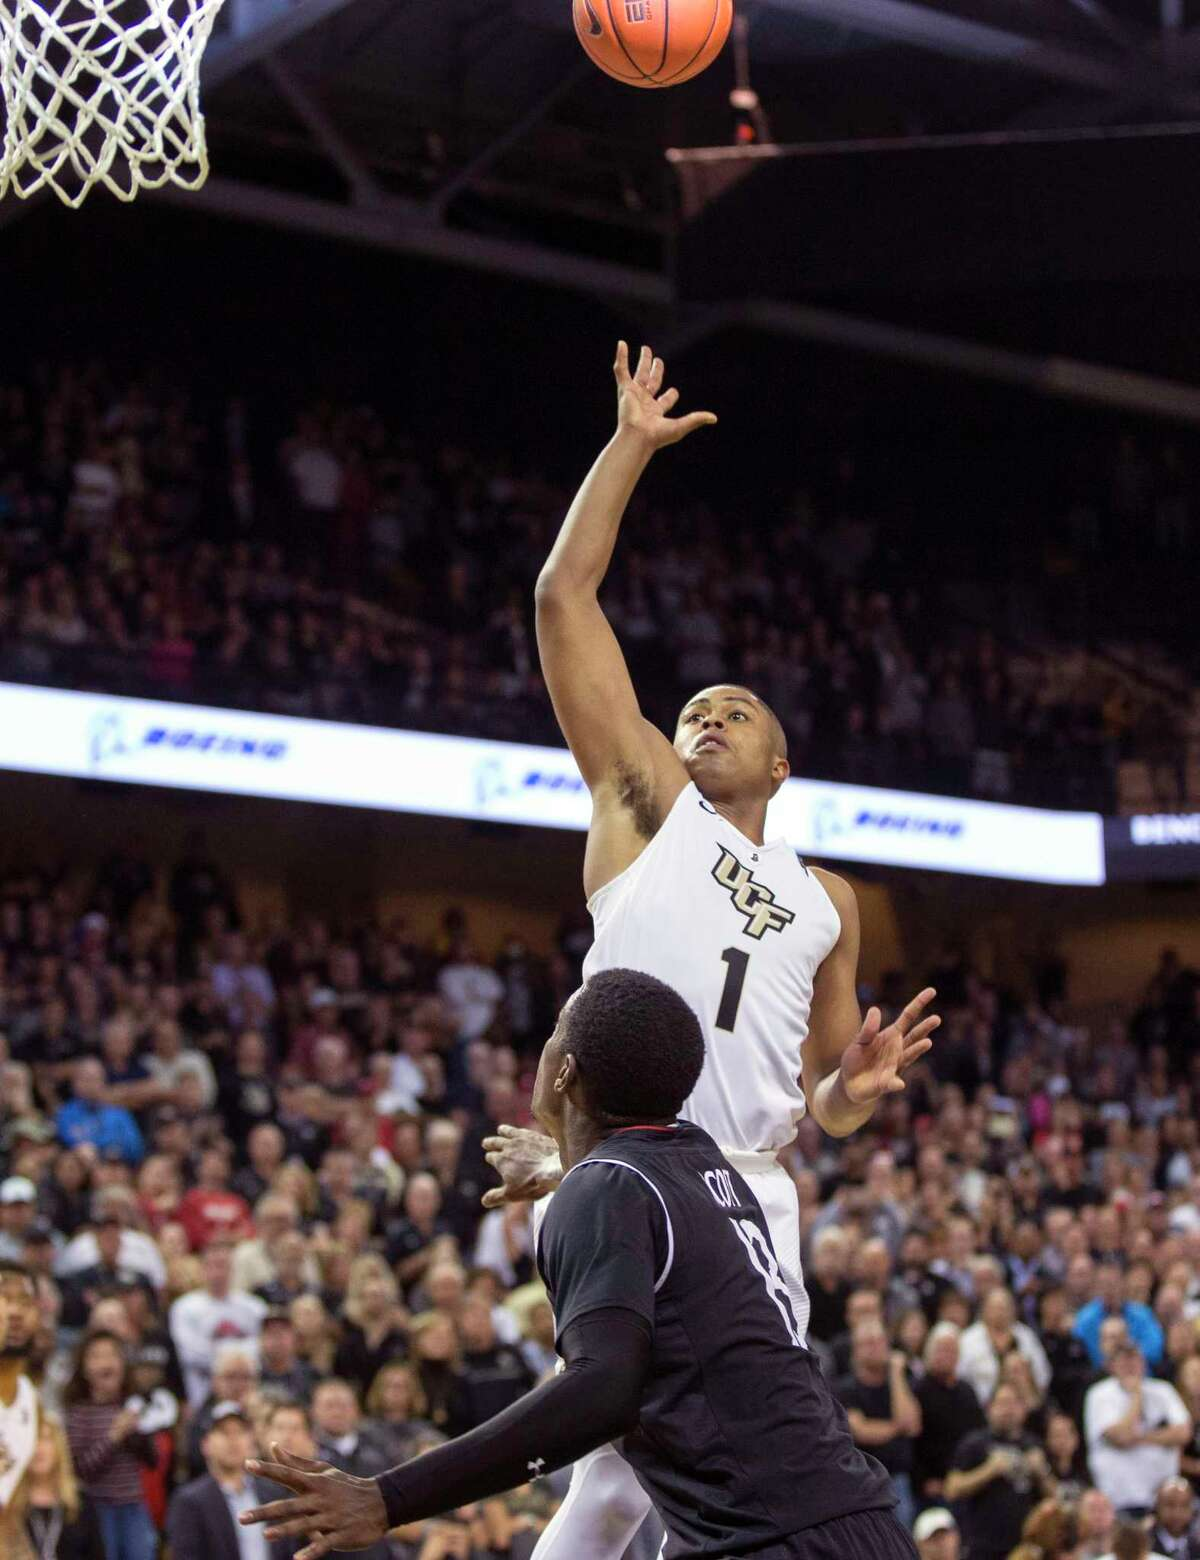 Central Florida guard B.J. Taylor (1) makes the last point of the game against Cincinnati forward Tre Scott (13) during the second half of an NCAA college basketball game, Thursday, March 7, 2019, in Orlando, Fla. (AP Photo/Willie J. Allen Jr.)